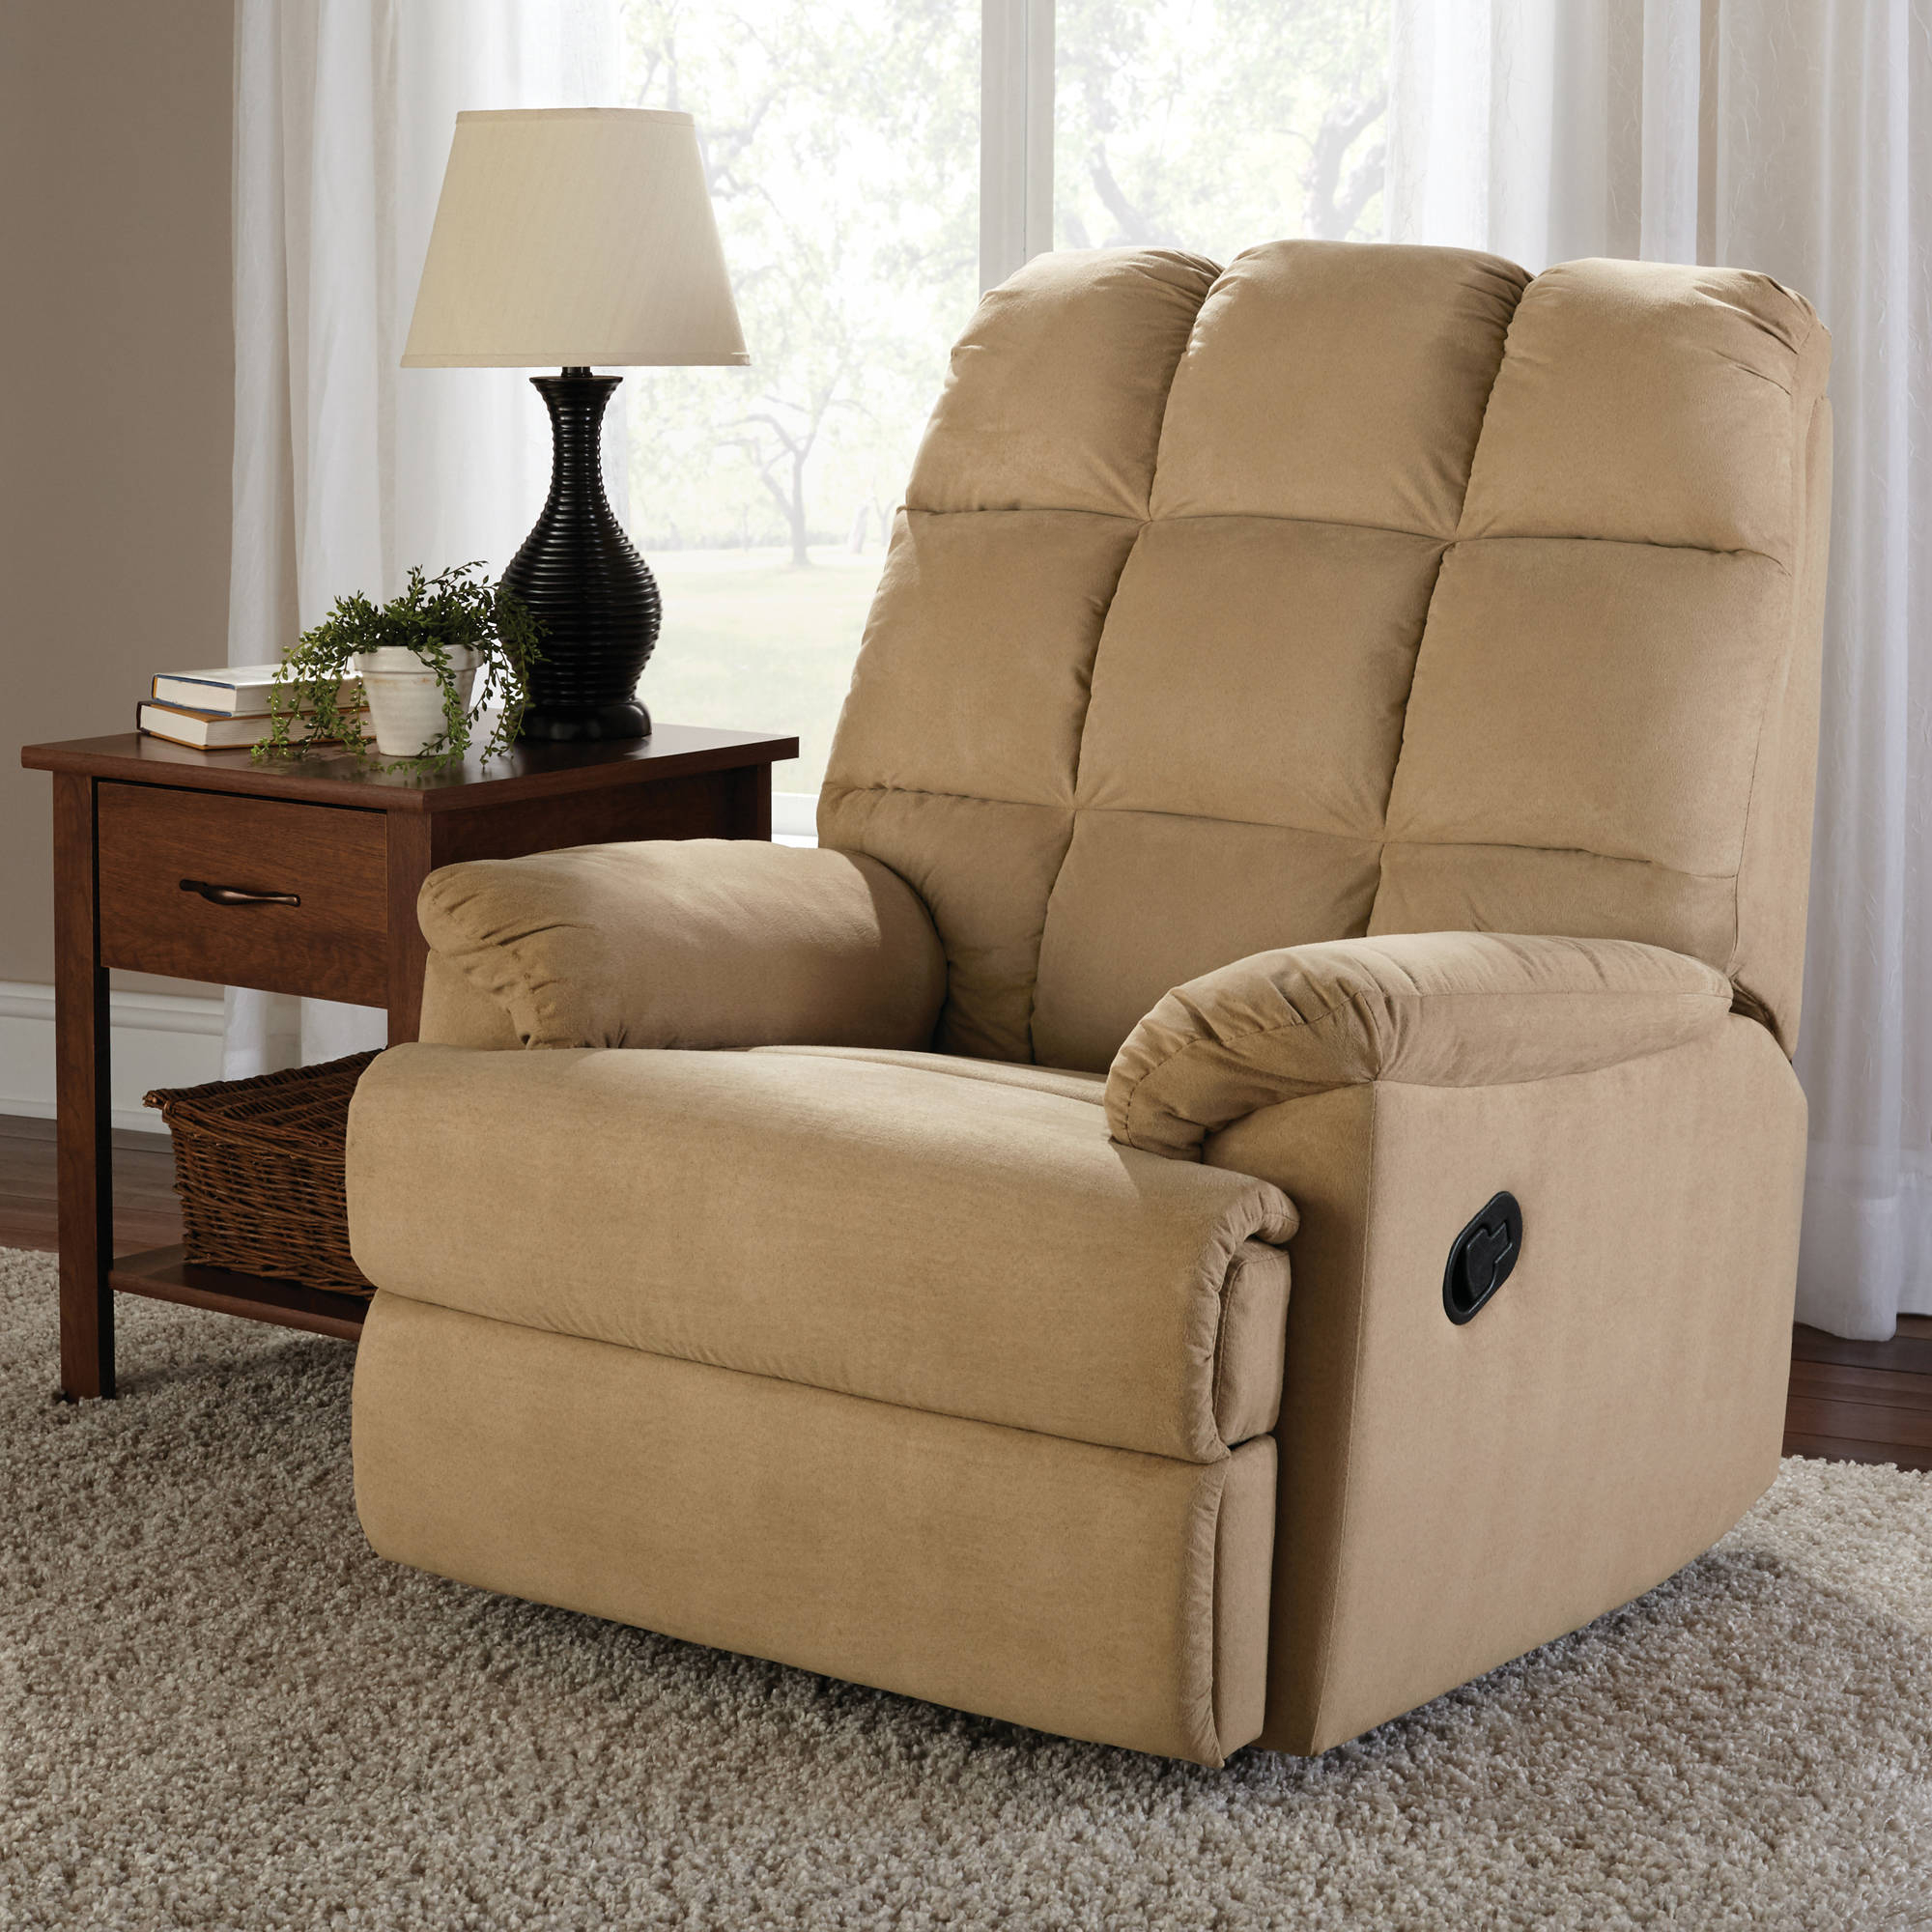 Abbey Swivel Glider Recliners Intended For Famous Furniture: Magnificent Walmart Glider Rocker For Fabulous Home (View 9 of 20)